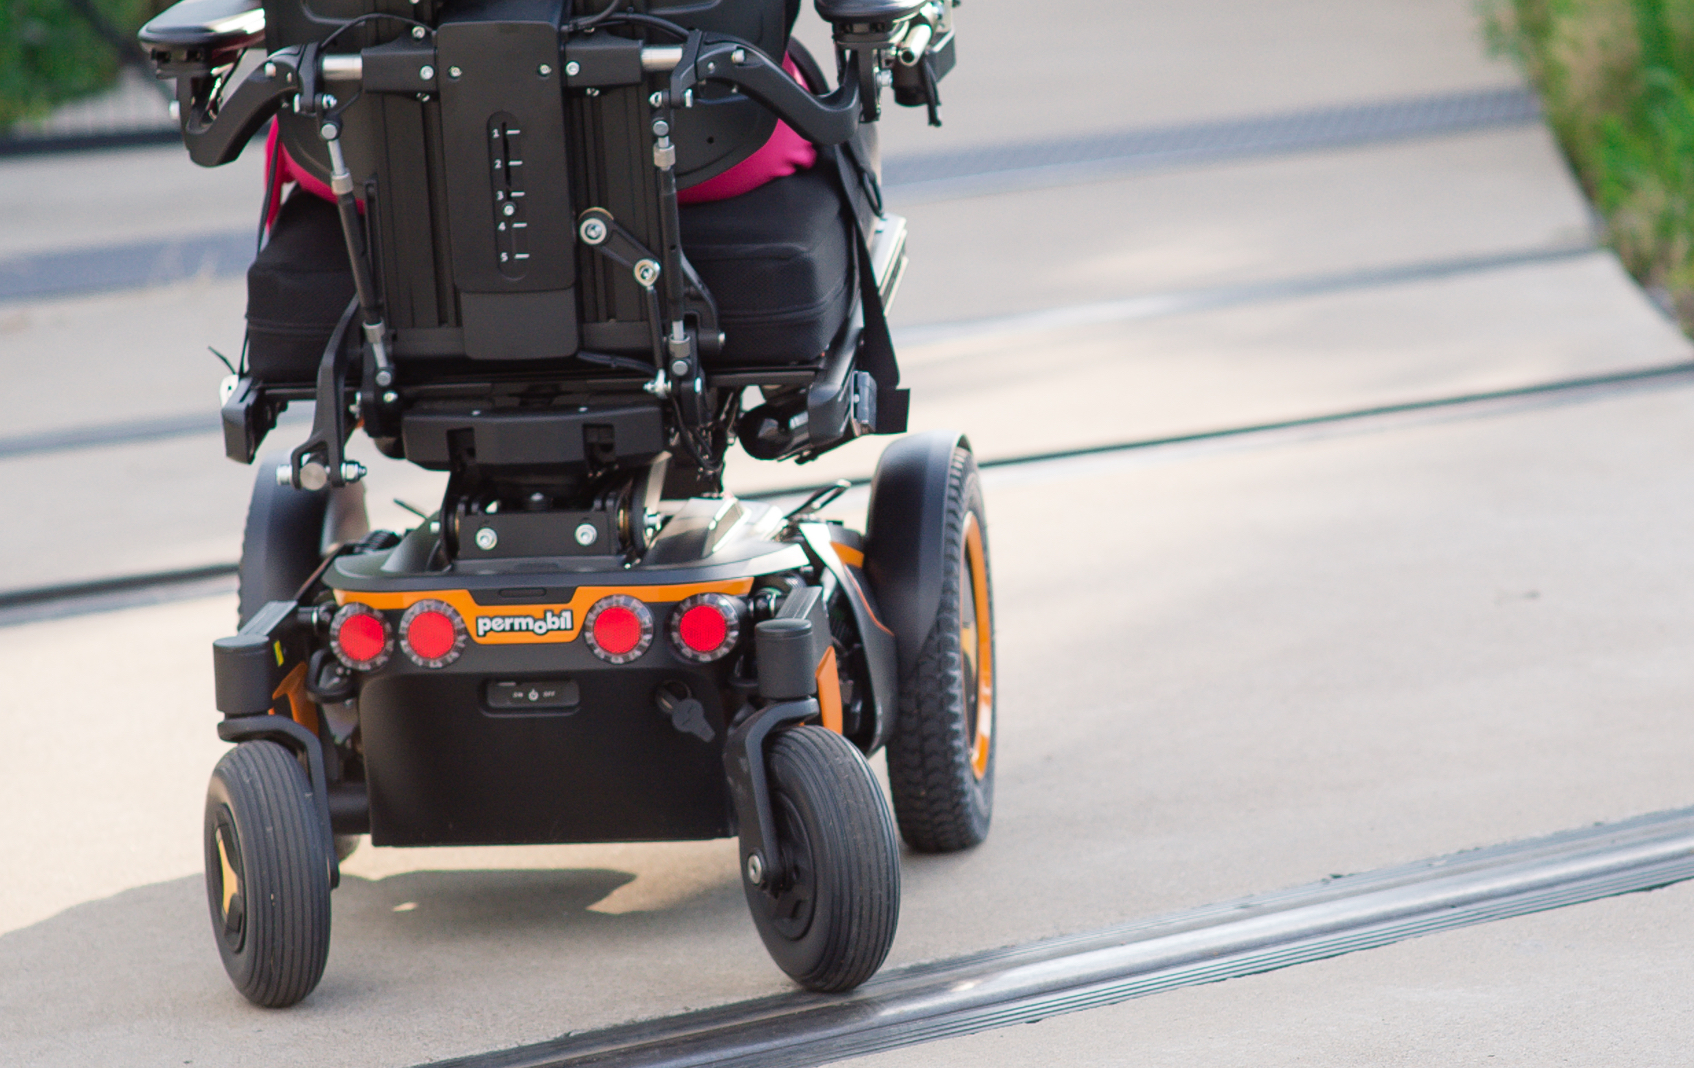 A Permobil Power Wheelchair